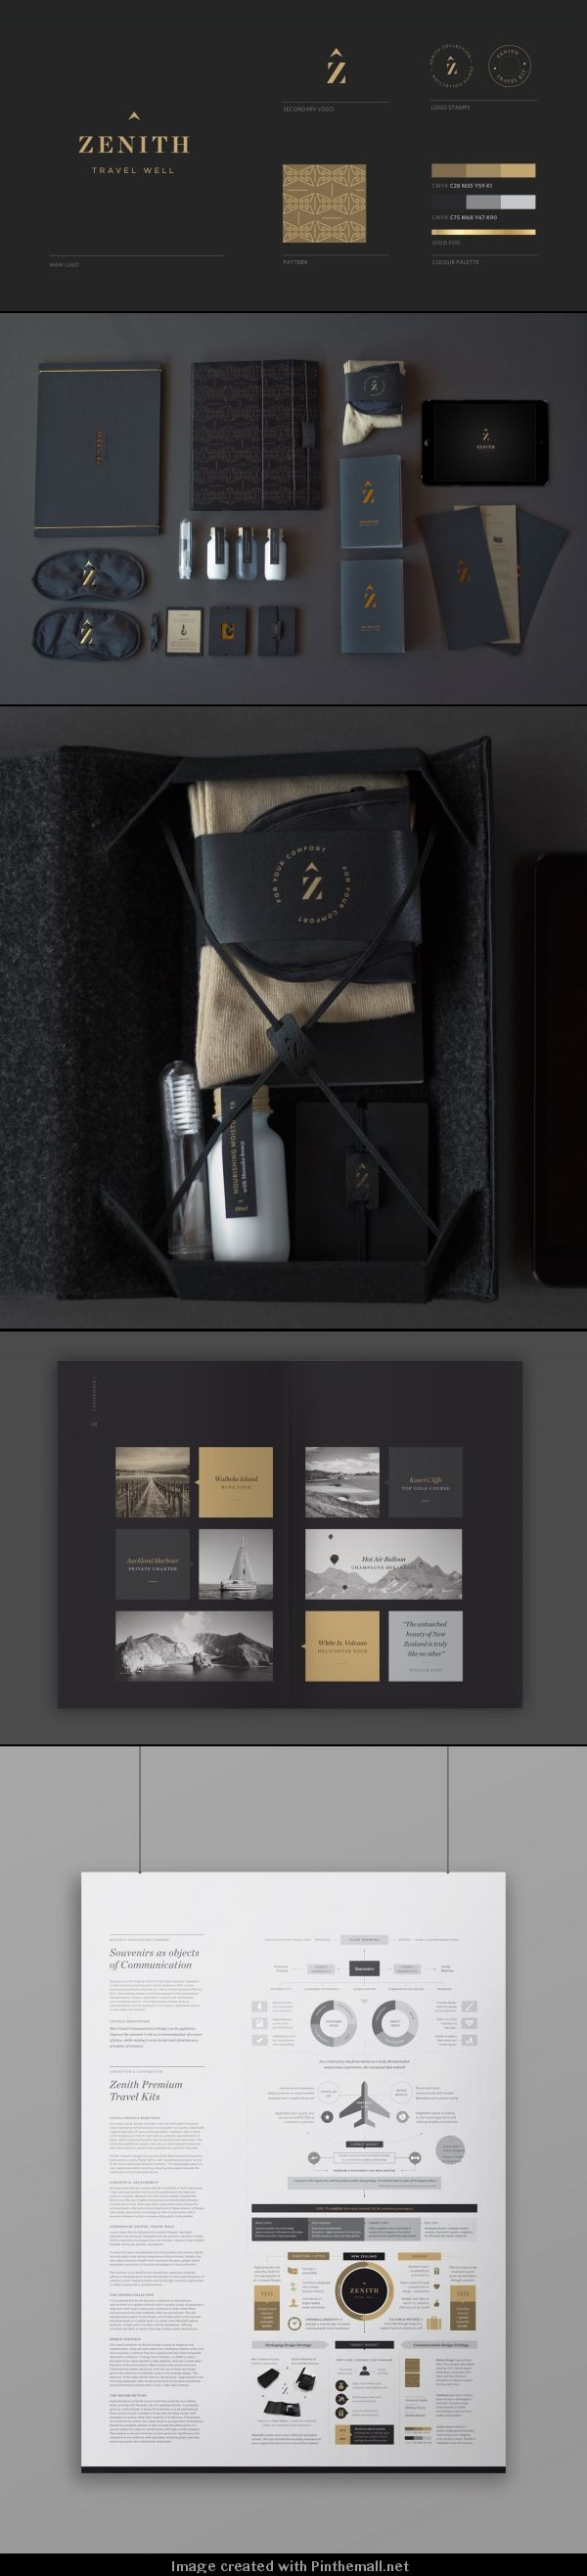 Zenith Premium Travel Kits / veronica cordero... - a grouped images pin by Pinthemall.net - Pin Them All